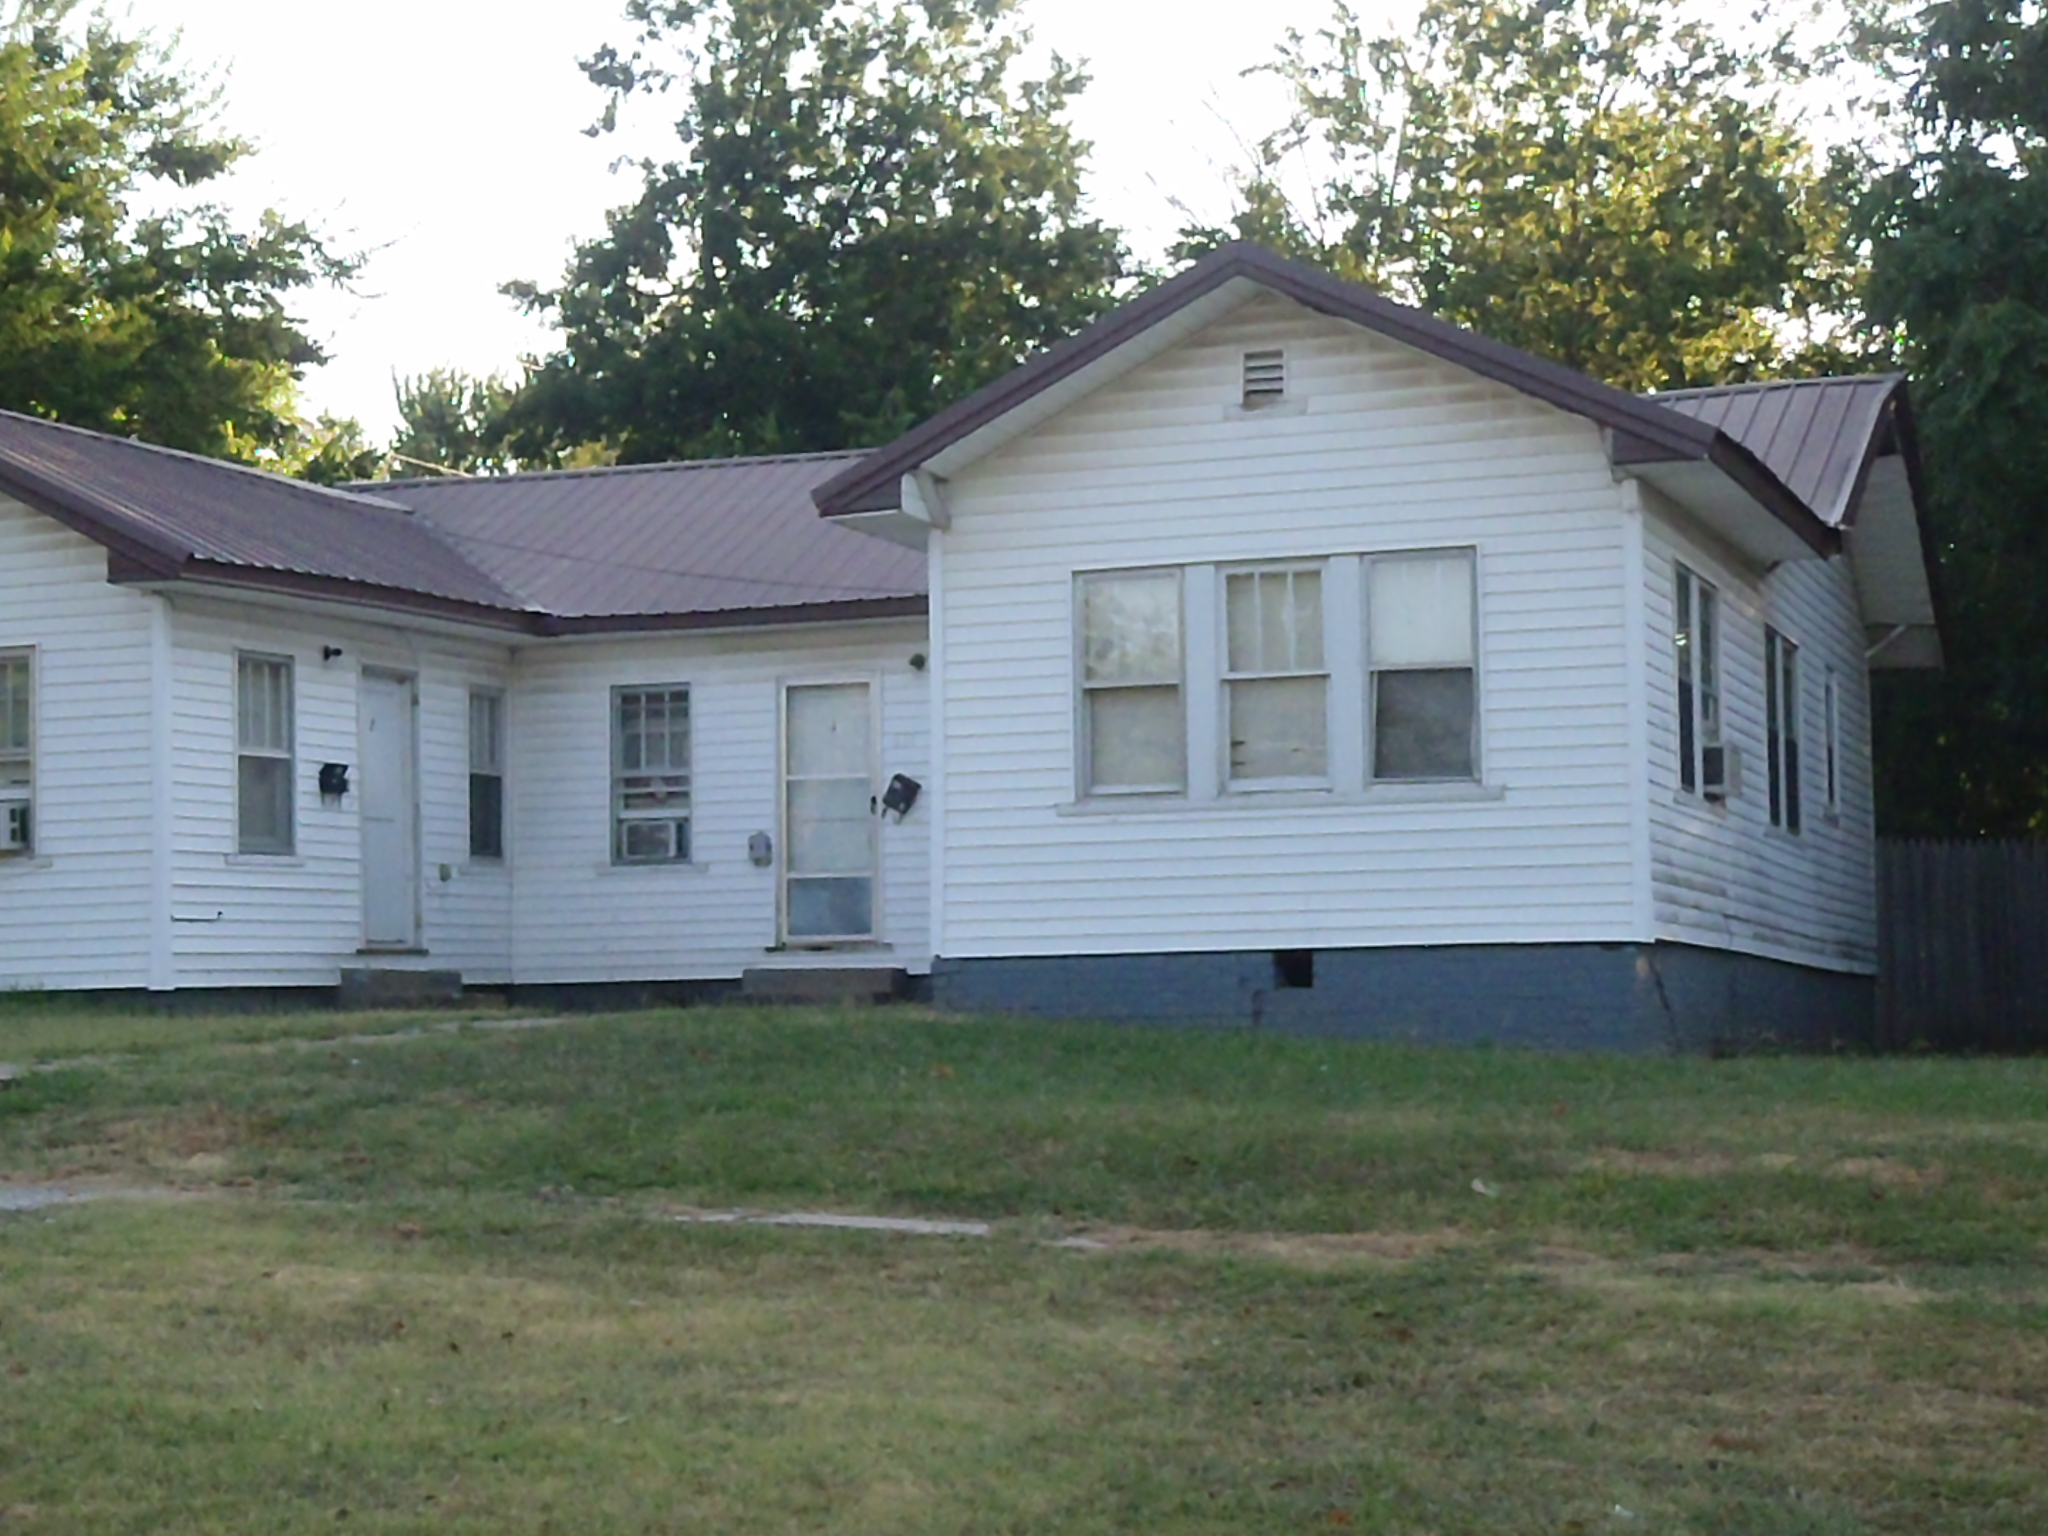 One bedroom apartment for rent in Ada  Oklahoma 74820. Houses Apartments and Mobile Homes for Rent in Ada  Oklahoma 74820